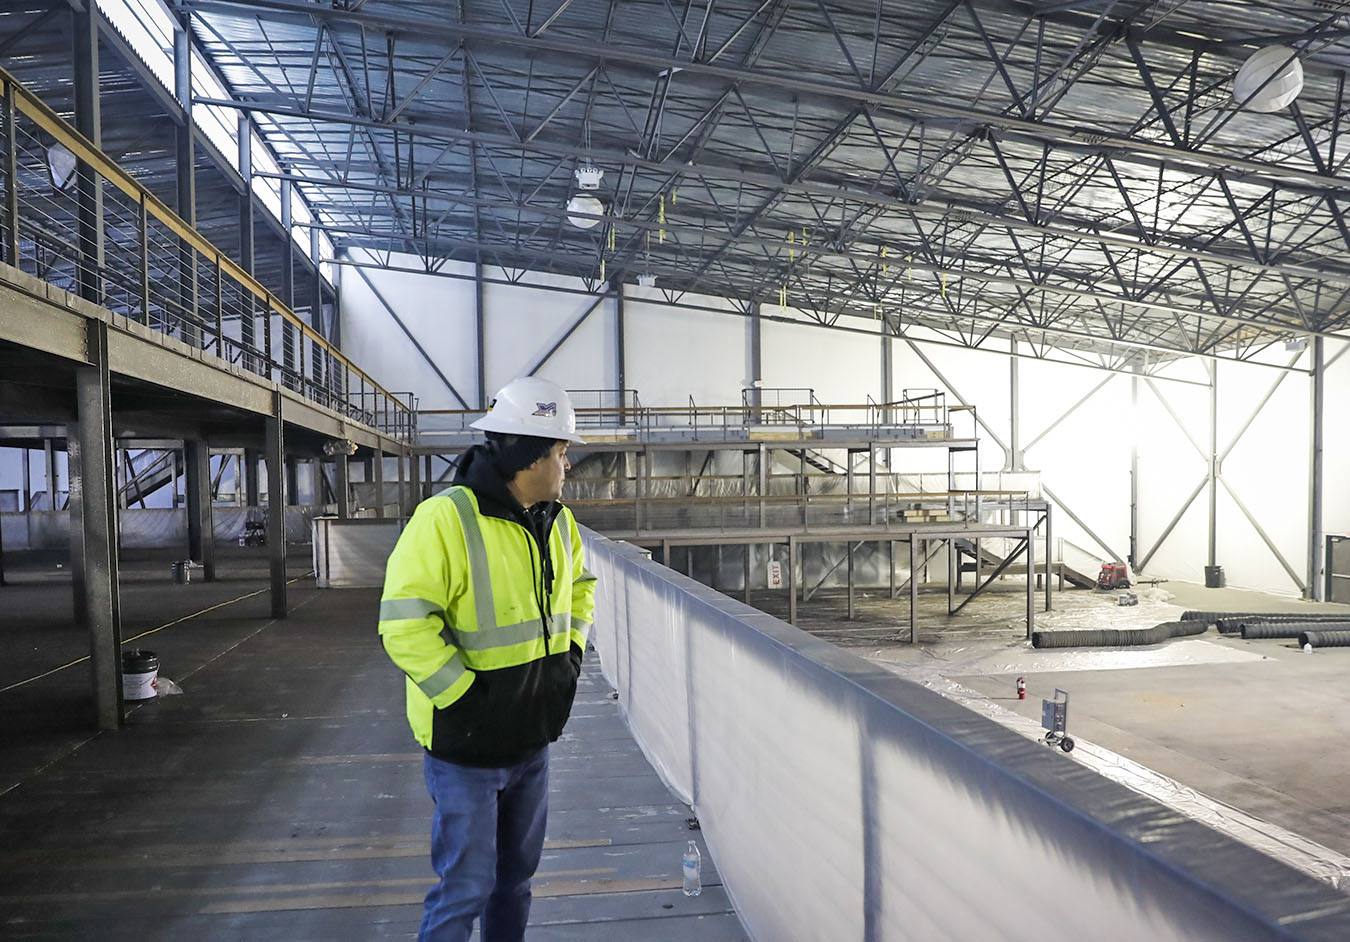 Construction crews were nearing completion of the Club Nomadic venue at Mystic Lake. / Renee Jones Schneider, Star Tribune